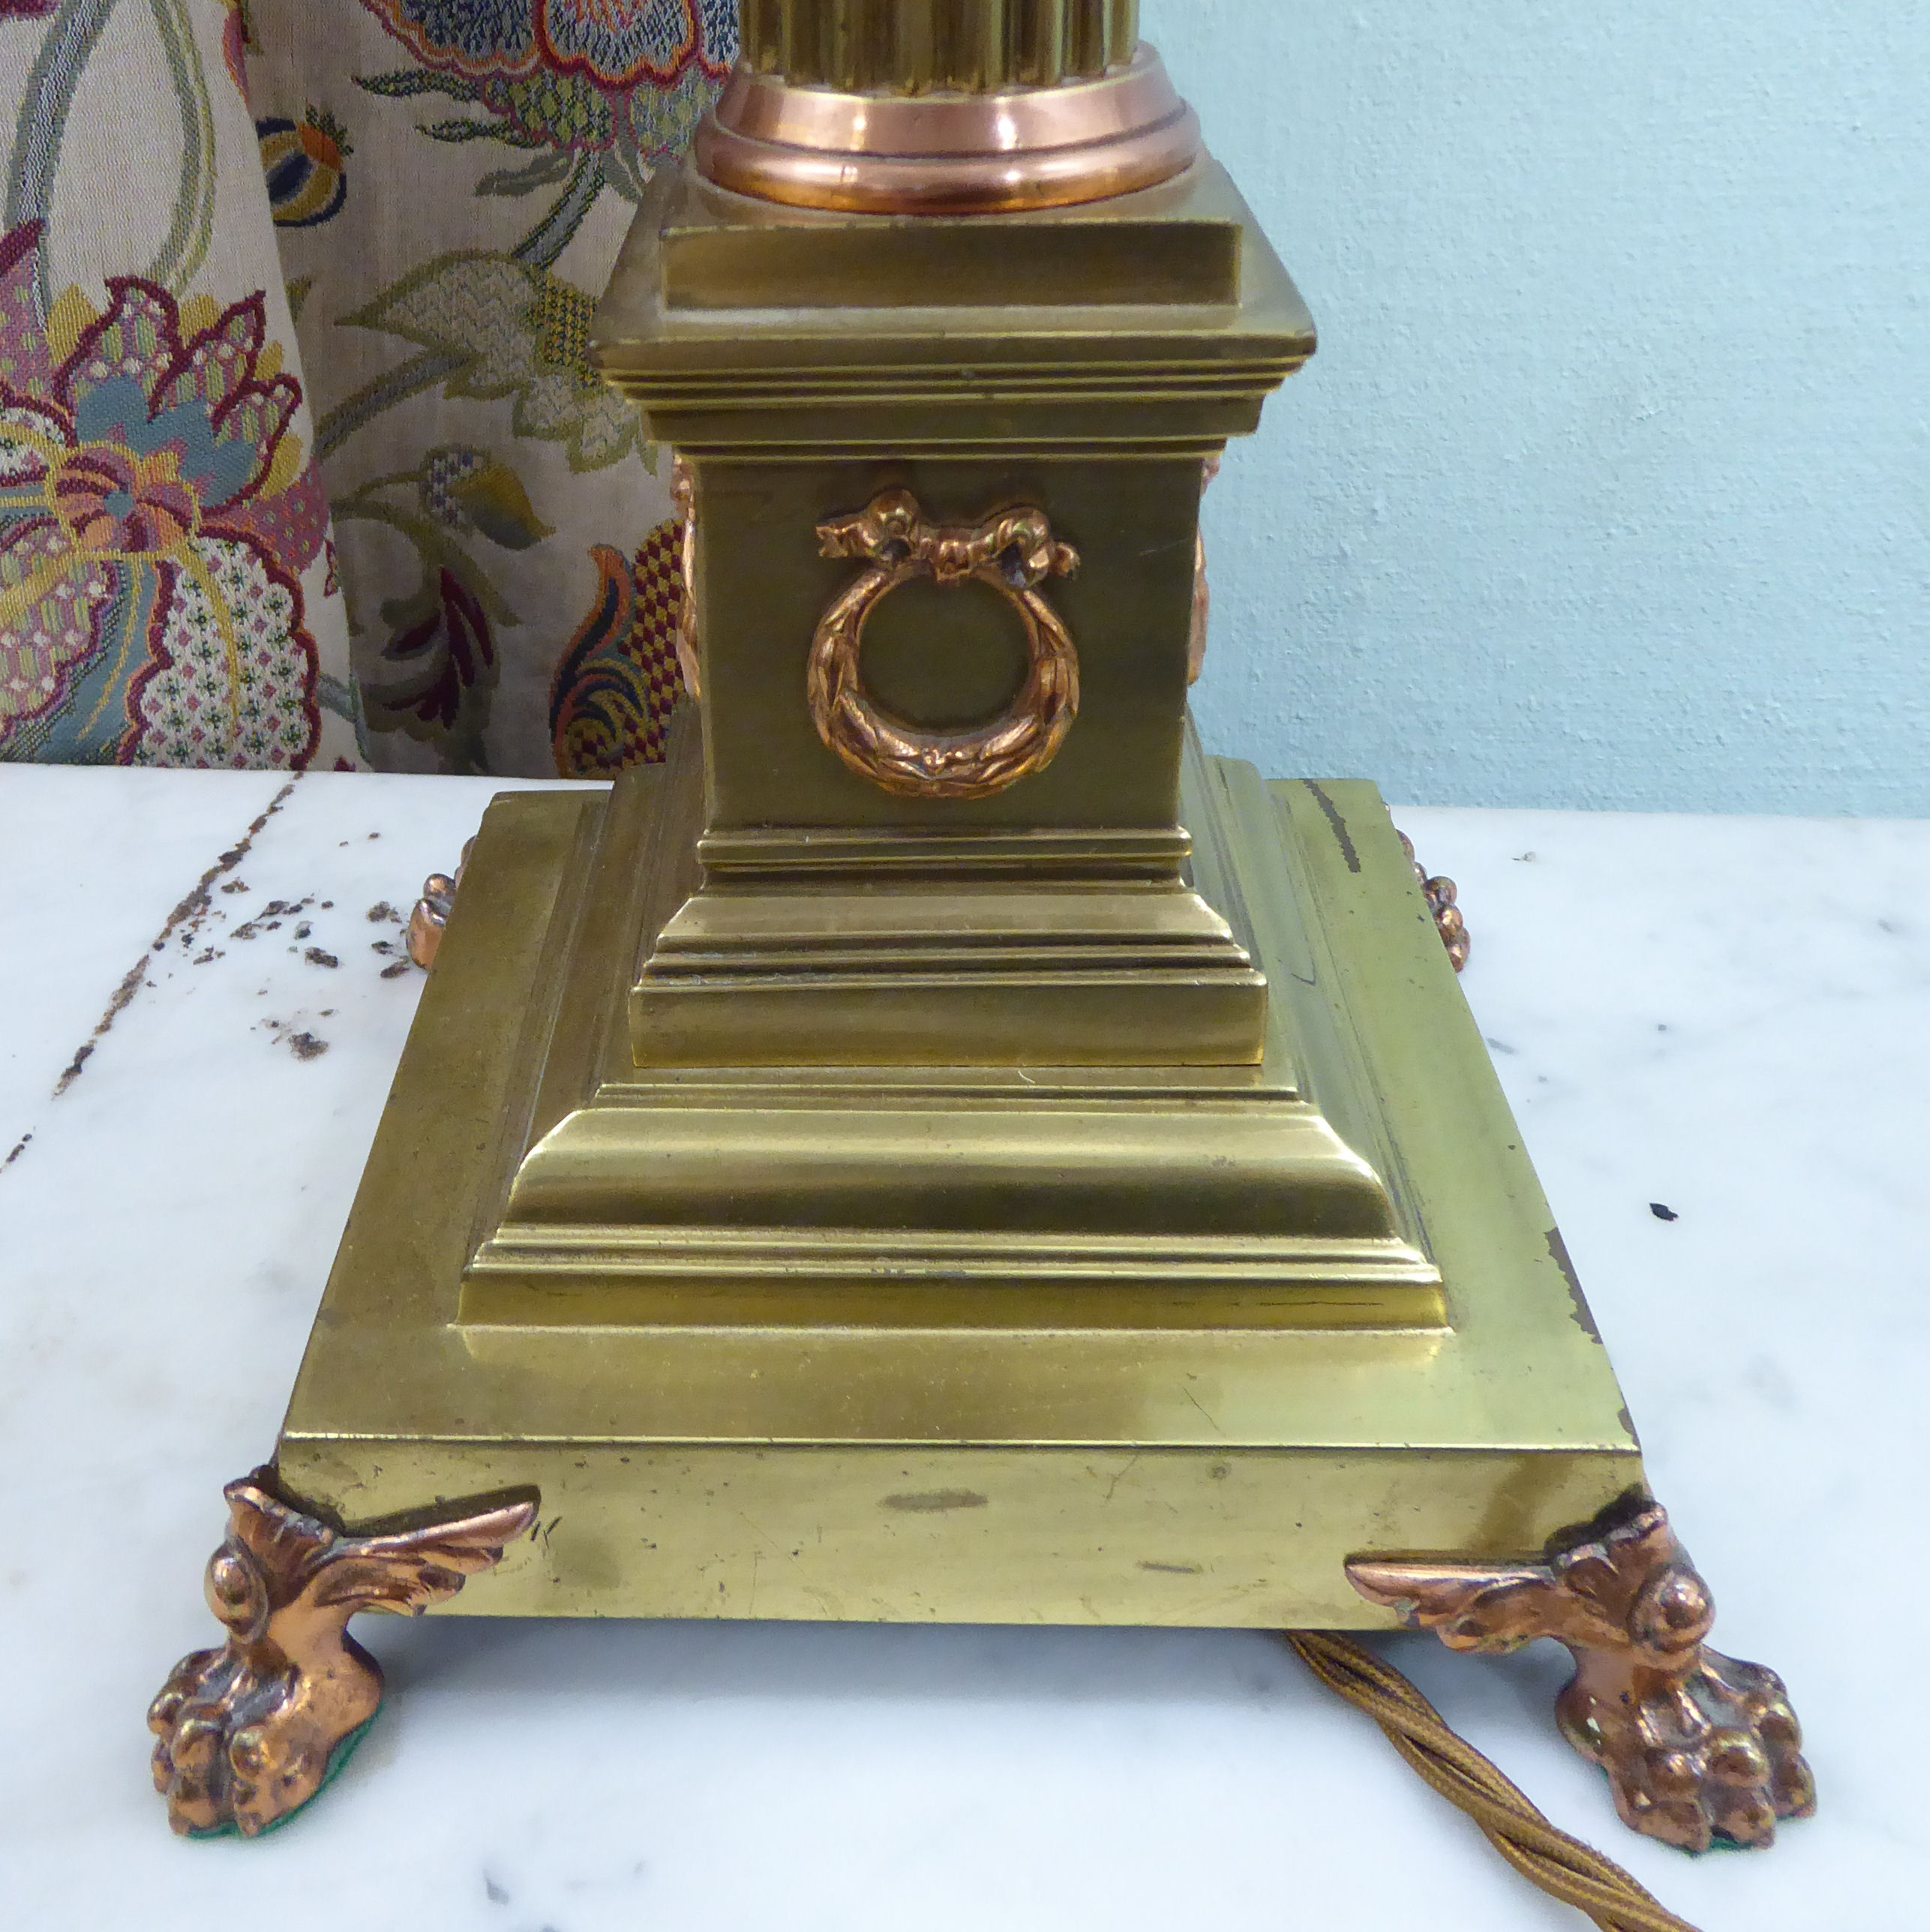 Lot 28 - An early 20thC lacquered brass and copper table lamp with a Corinthian capital,